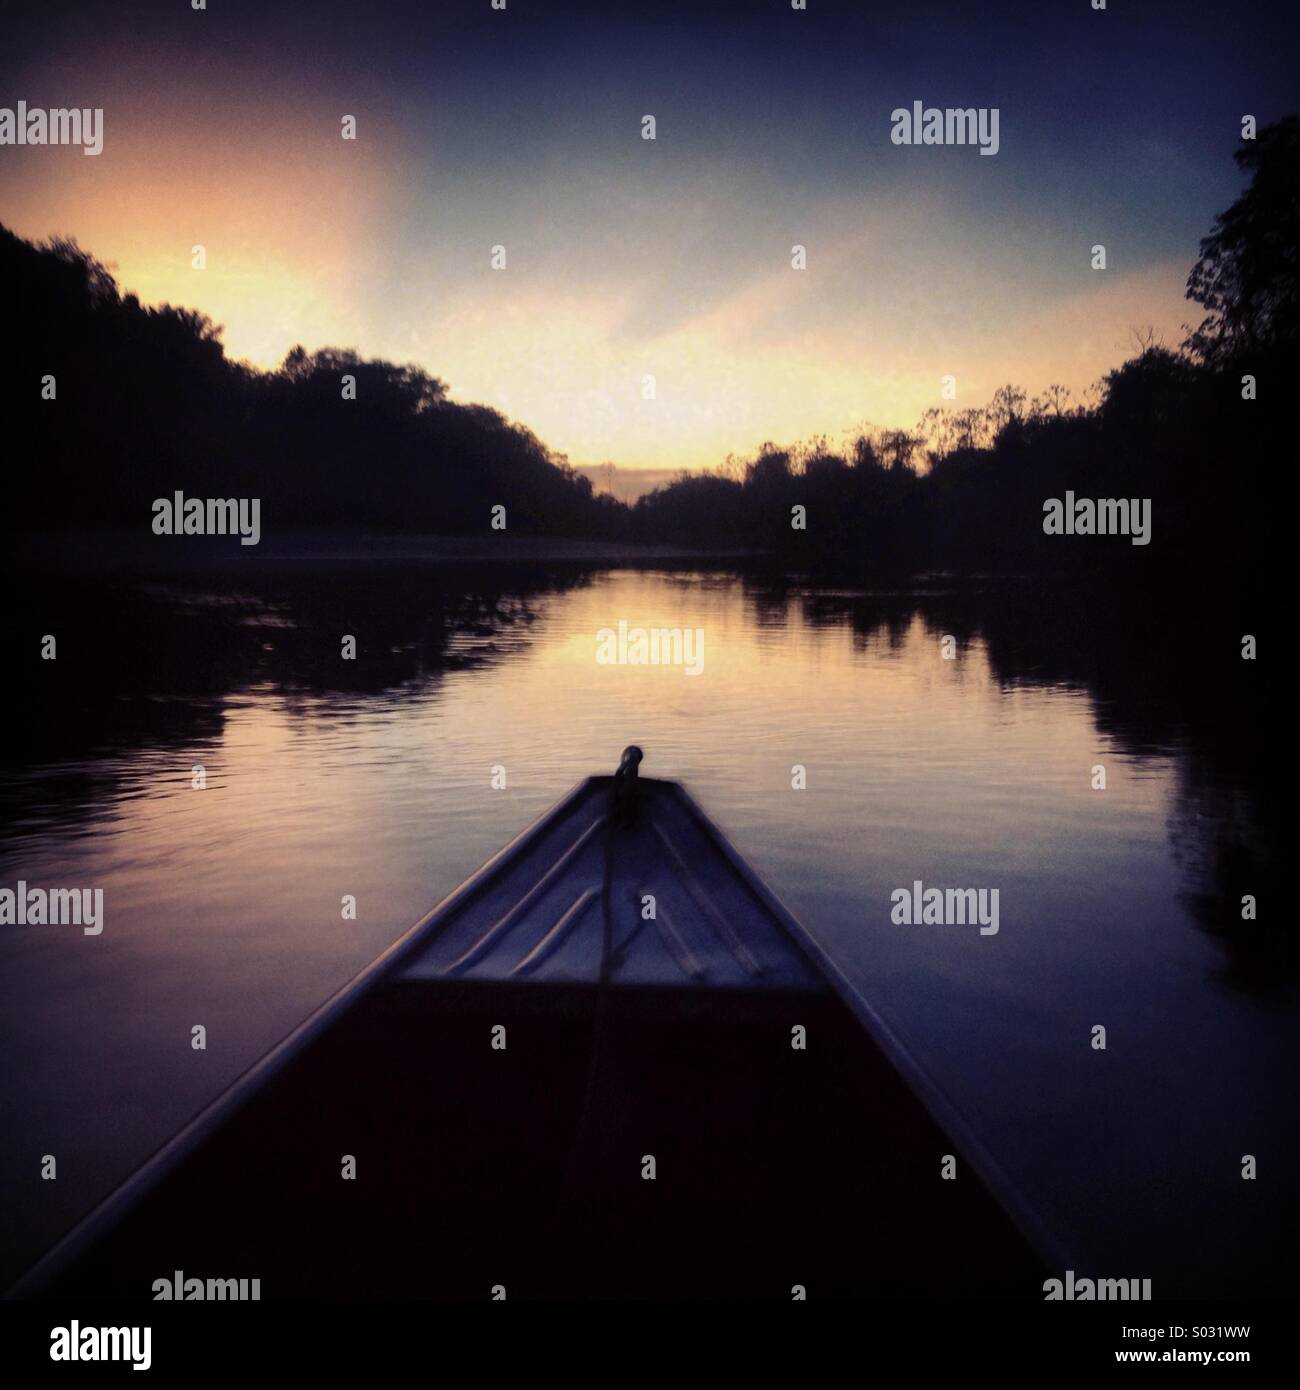 Canoe at dusk, Rupununi River, Guyana, South America - Stock Image